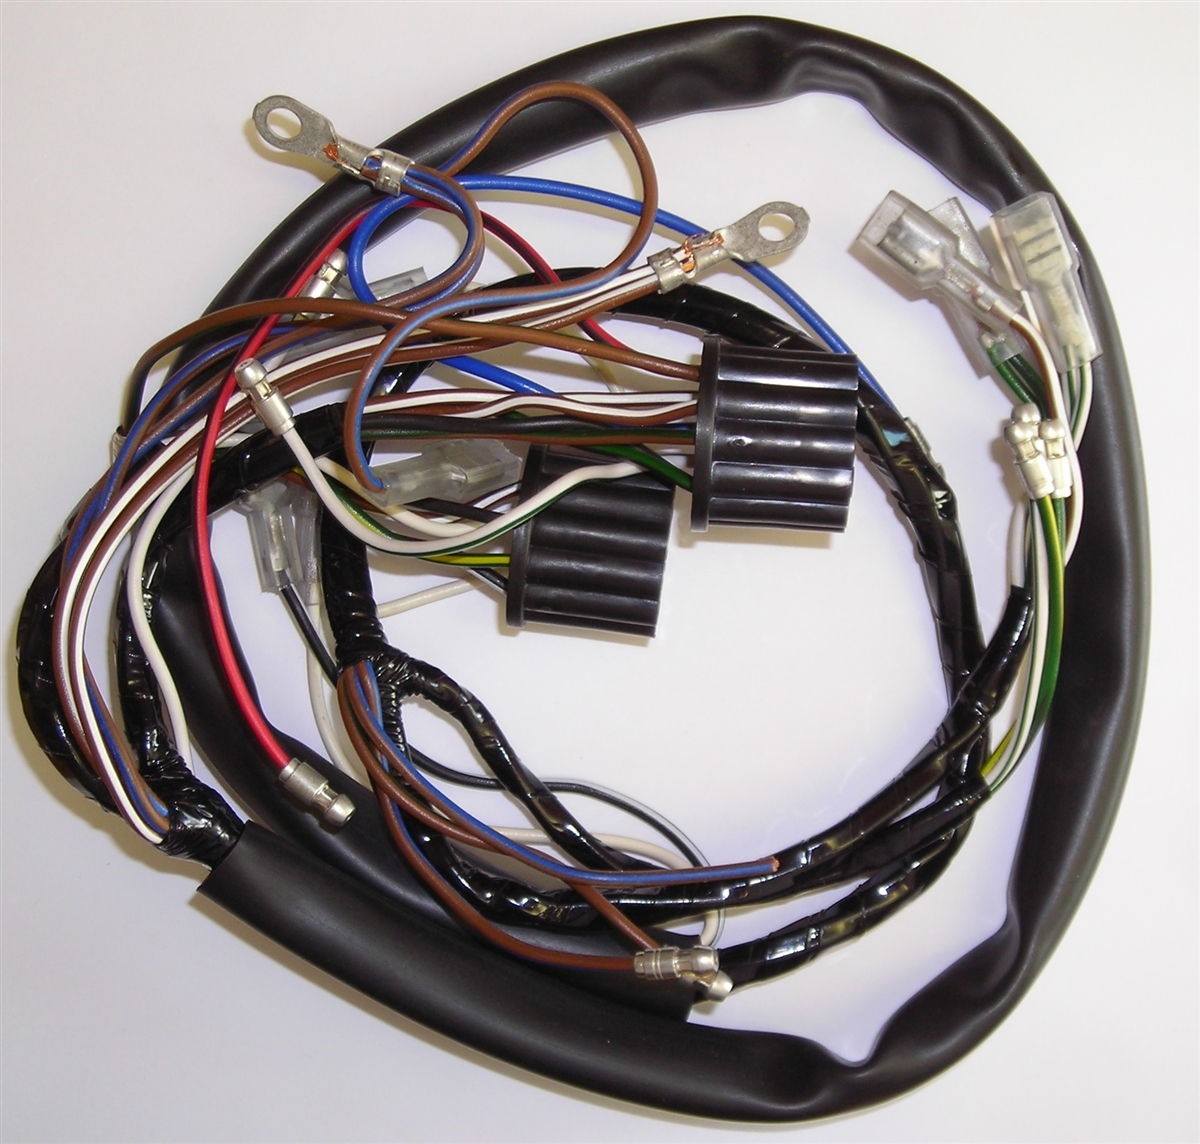 medium resolution of triumph motorcycle wiring harness rh britishwiring com motorcycle wiring harness connectors motorcycle wiring harness rebuilders